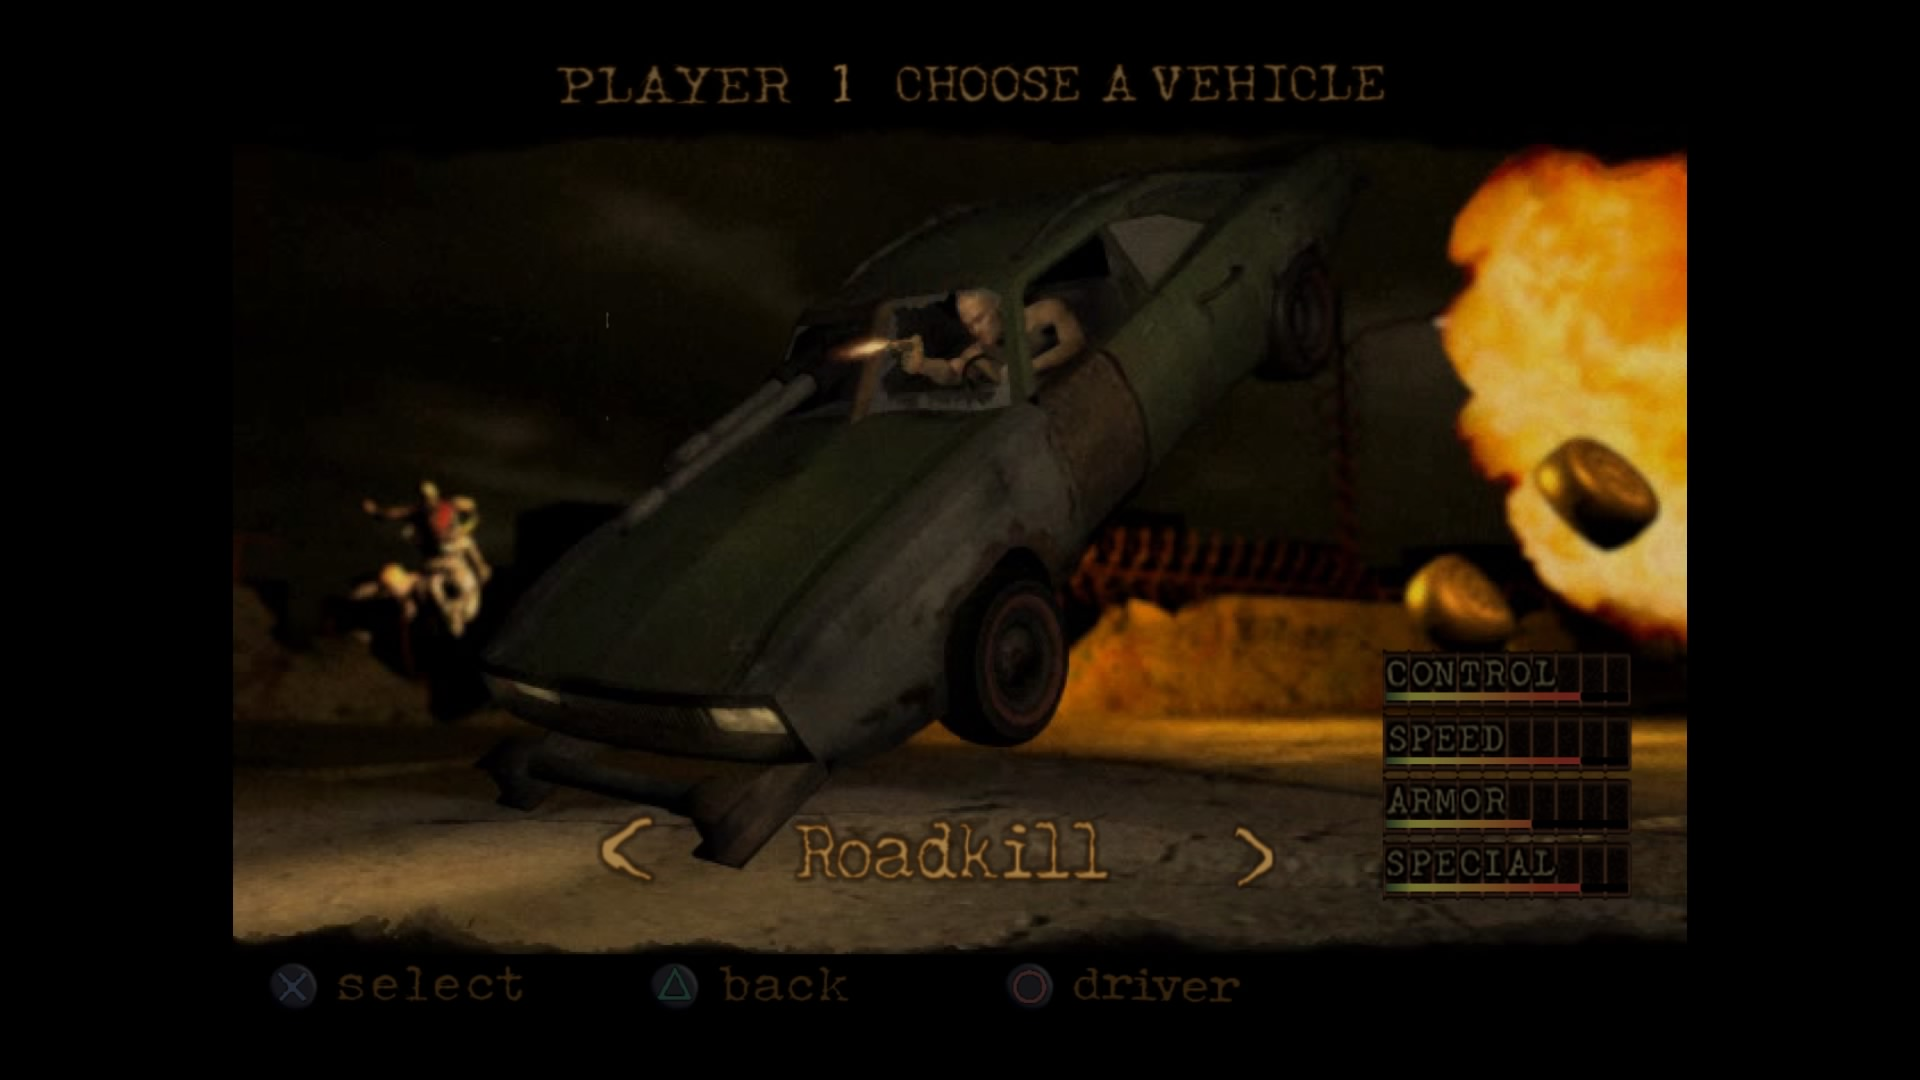 Twisted Metal PS4 - PS2 on PS4 Revisited